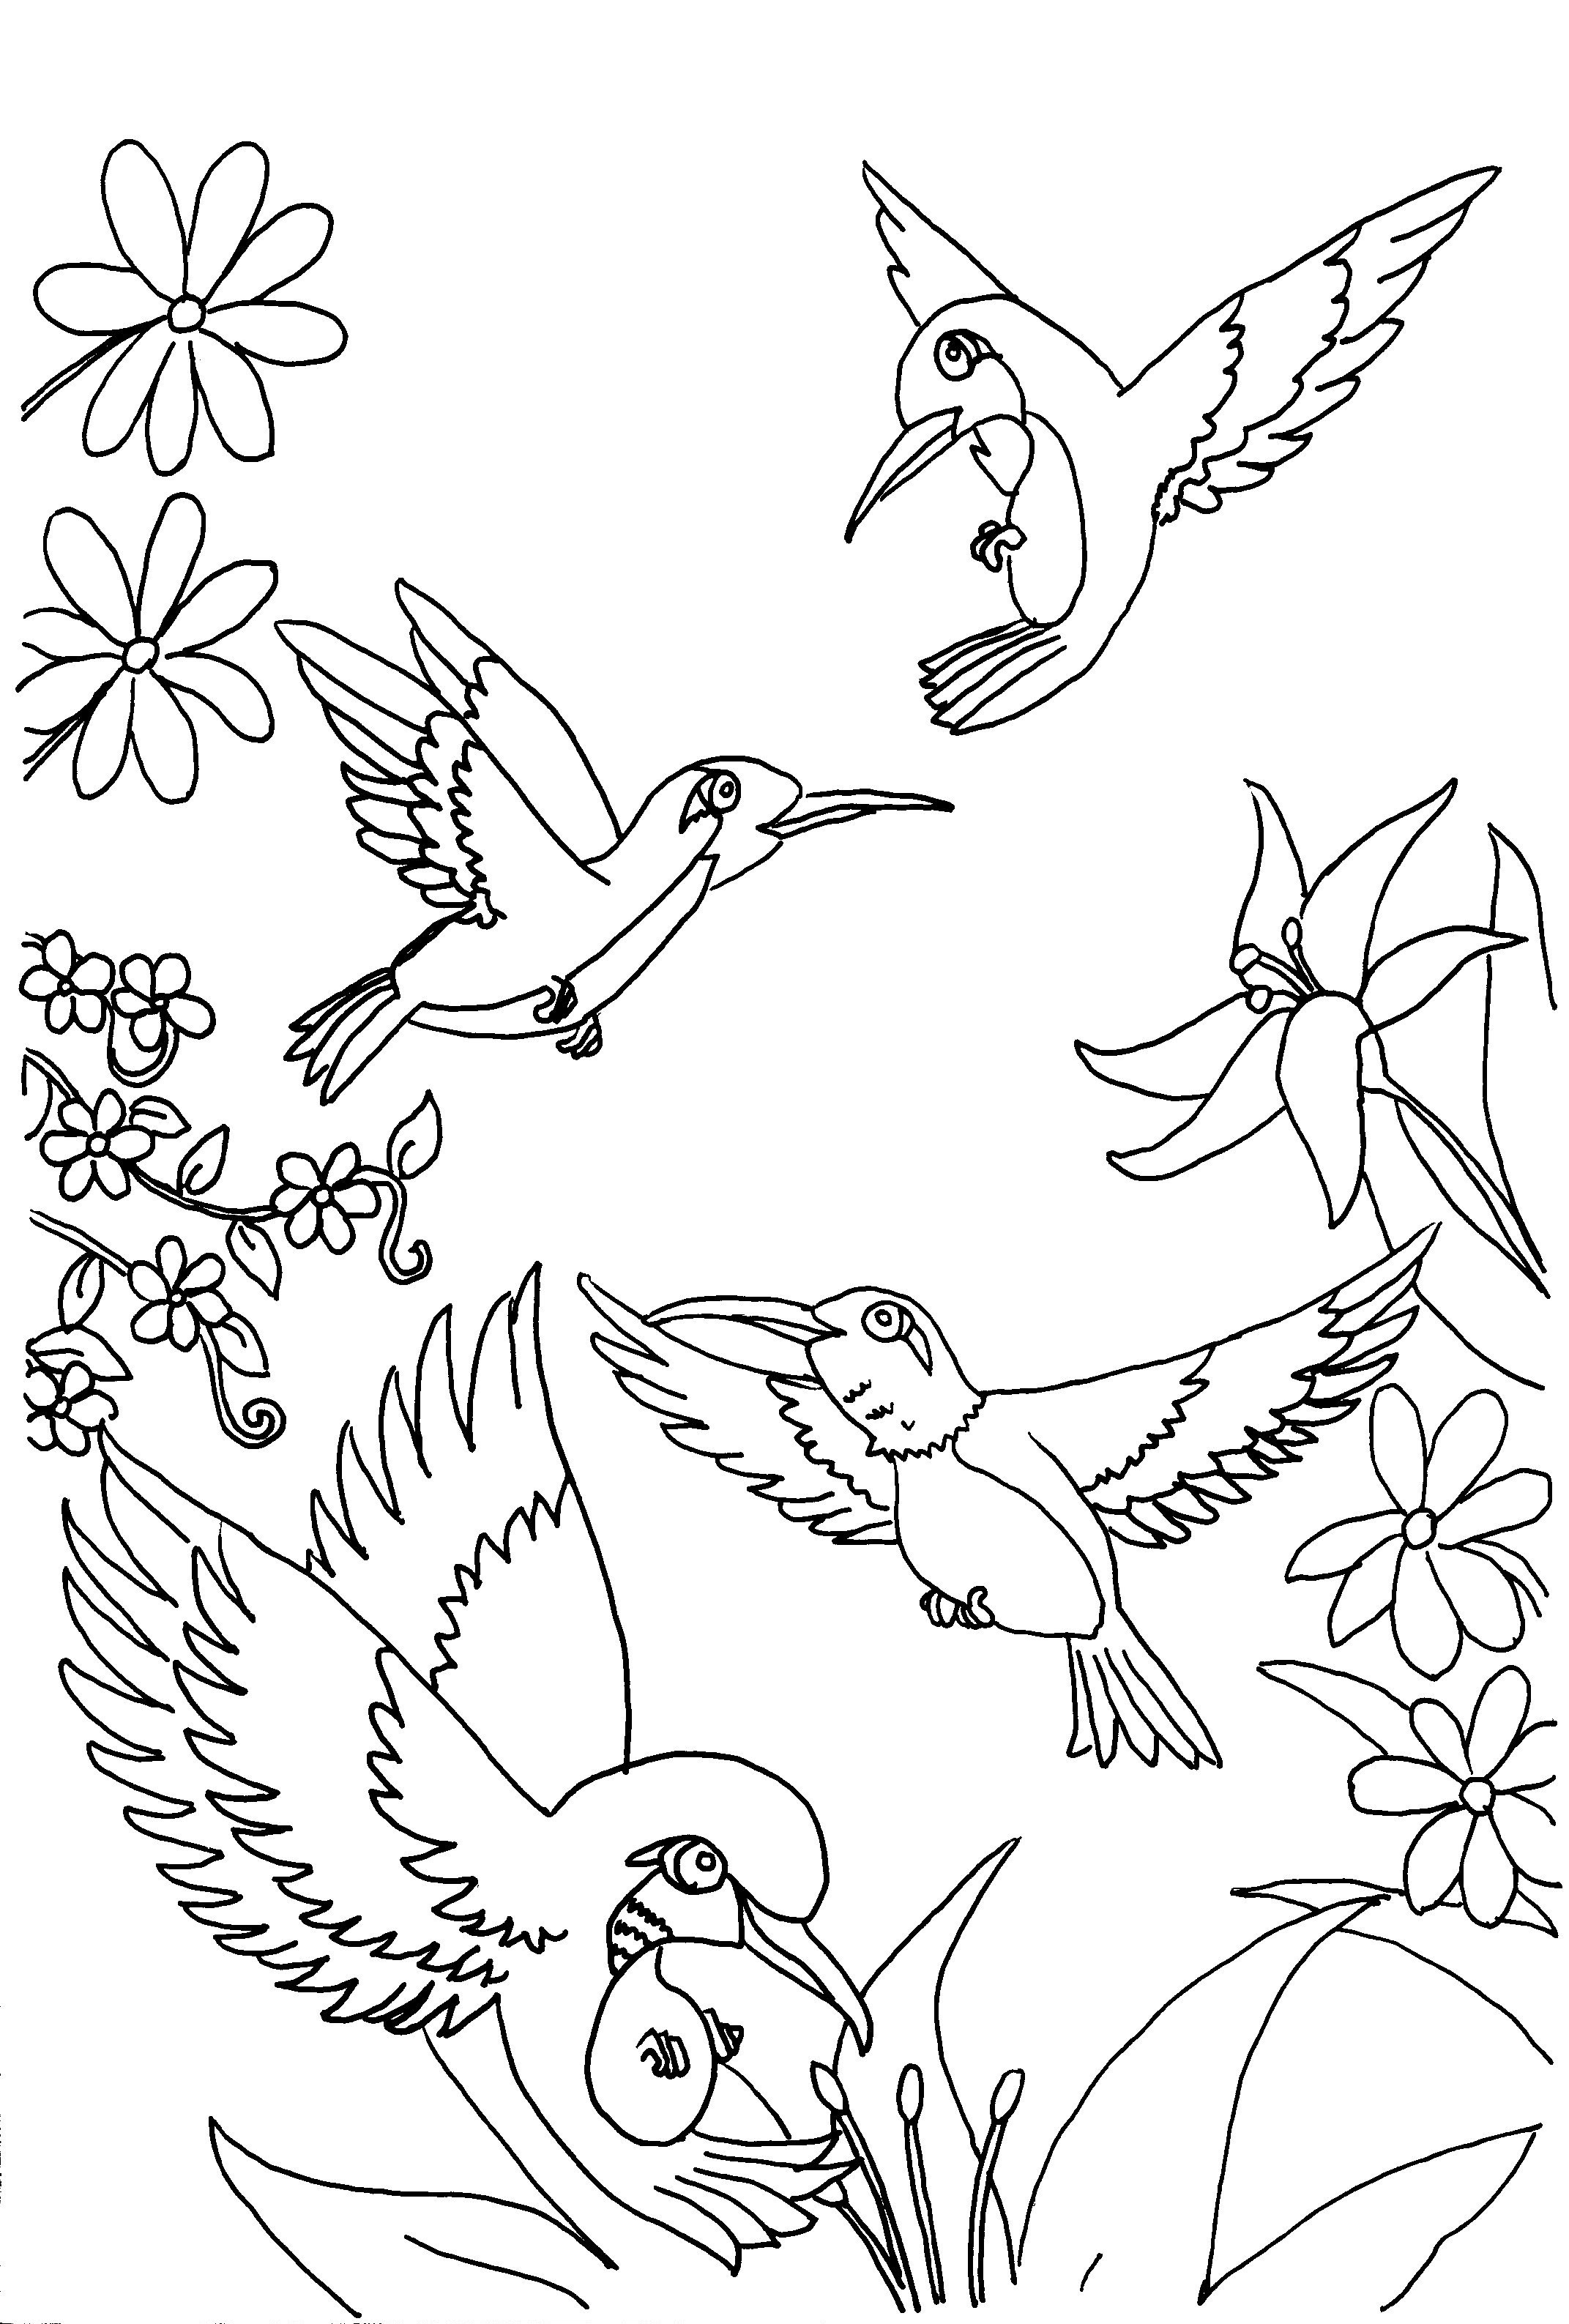 coloring pictures of hummingbirds free printable hummingbird coloring pages for kids hummingbirds coloring pictures of